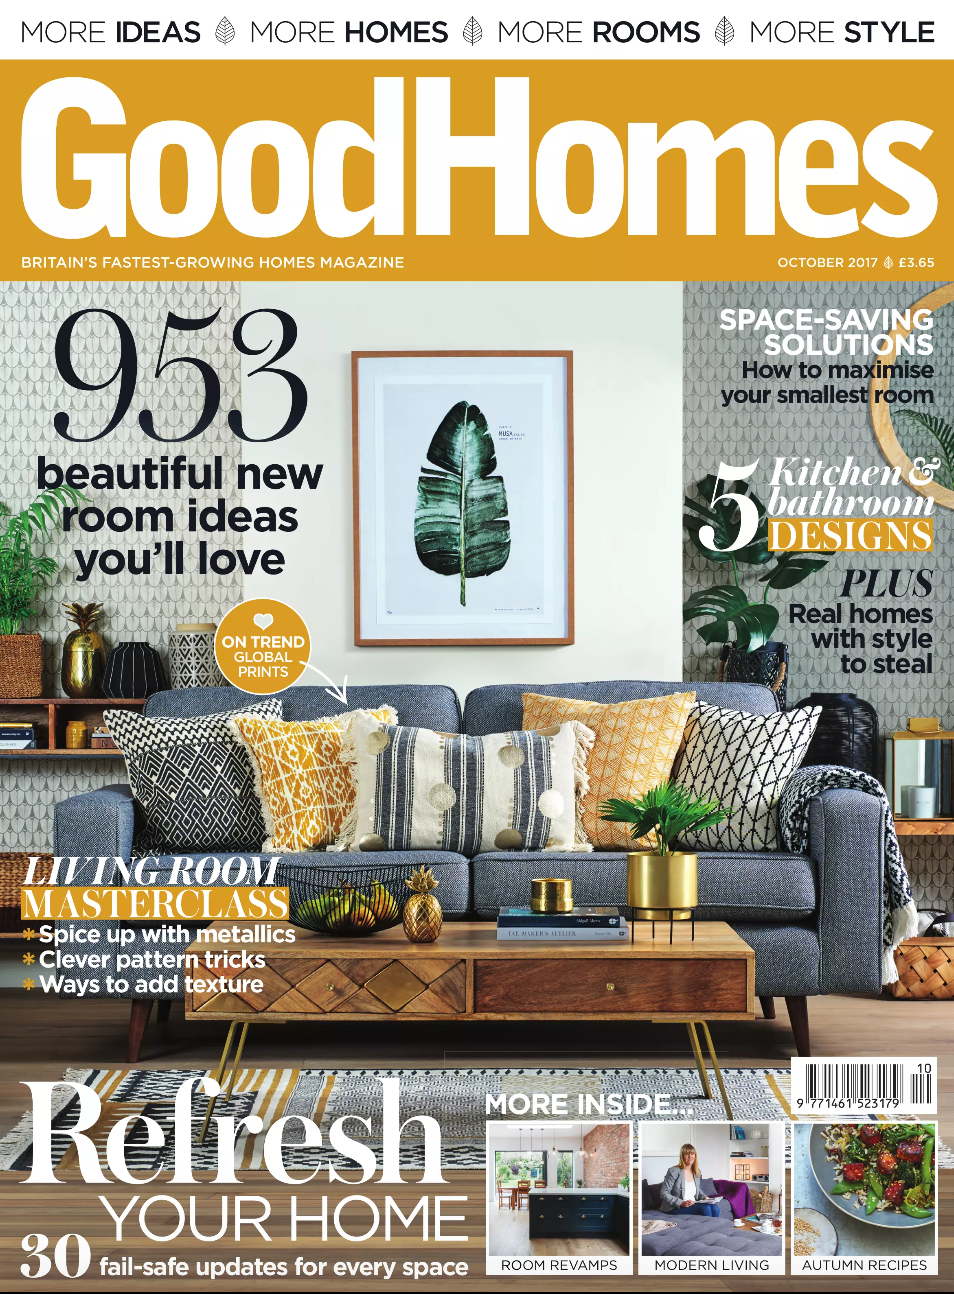 AnnaCoxCushions_Press_GoodHomes_1.png